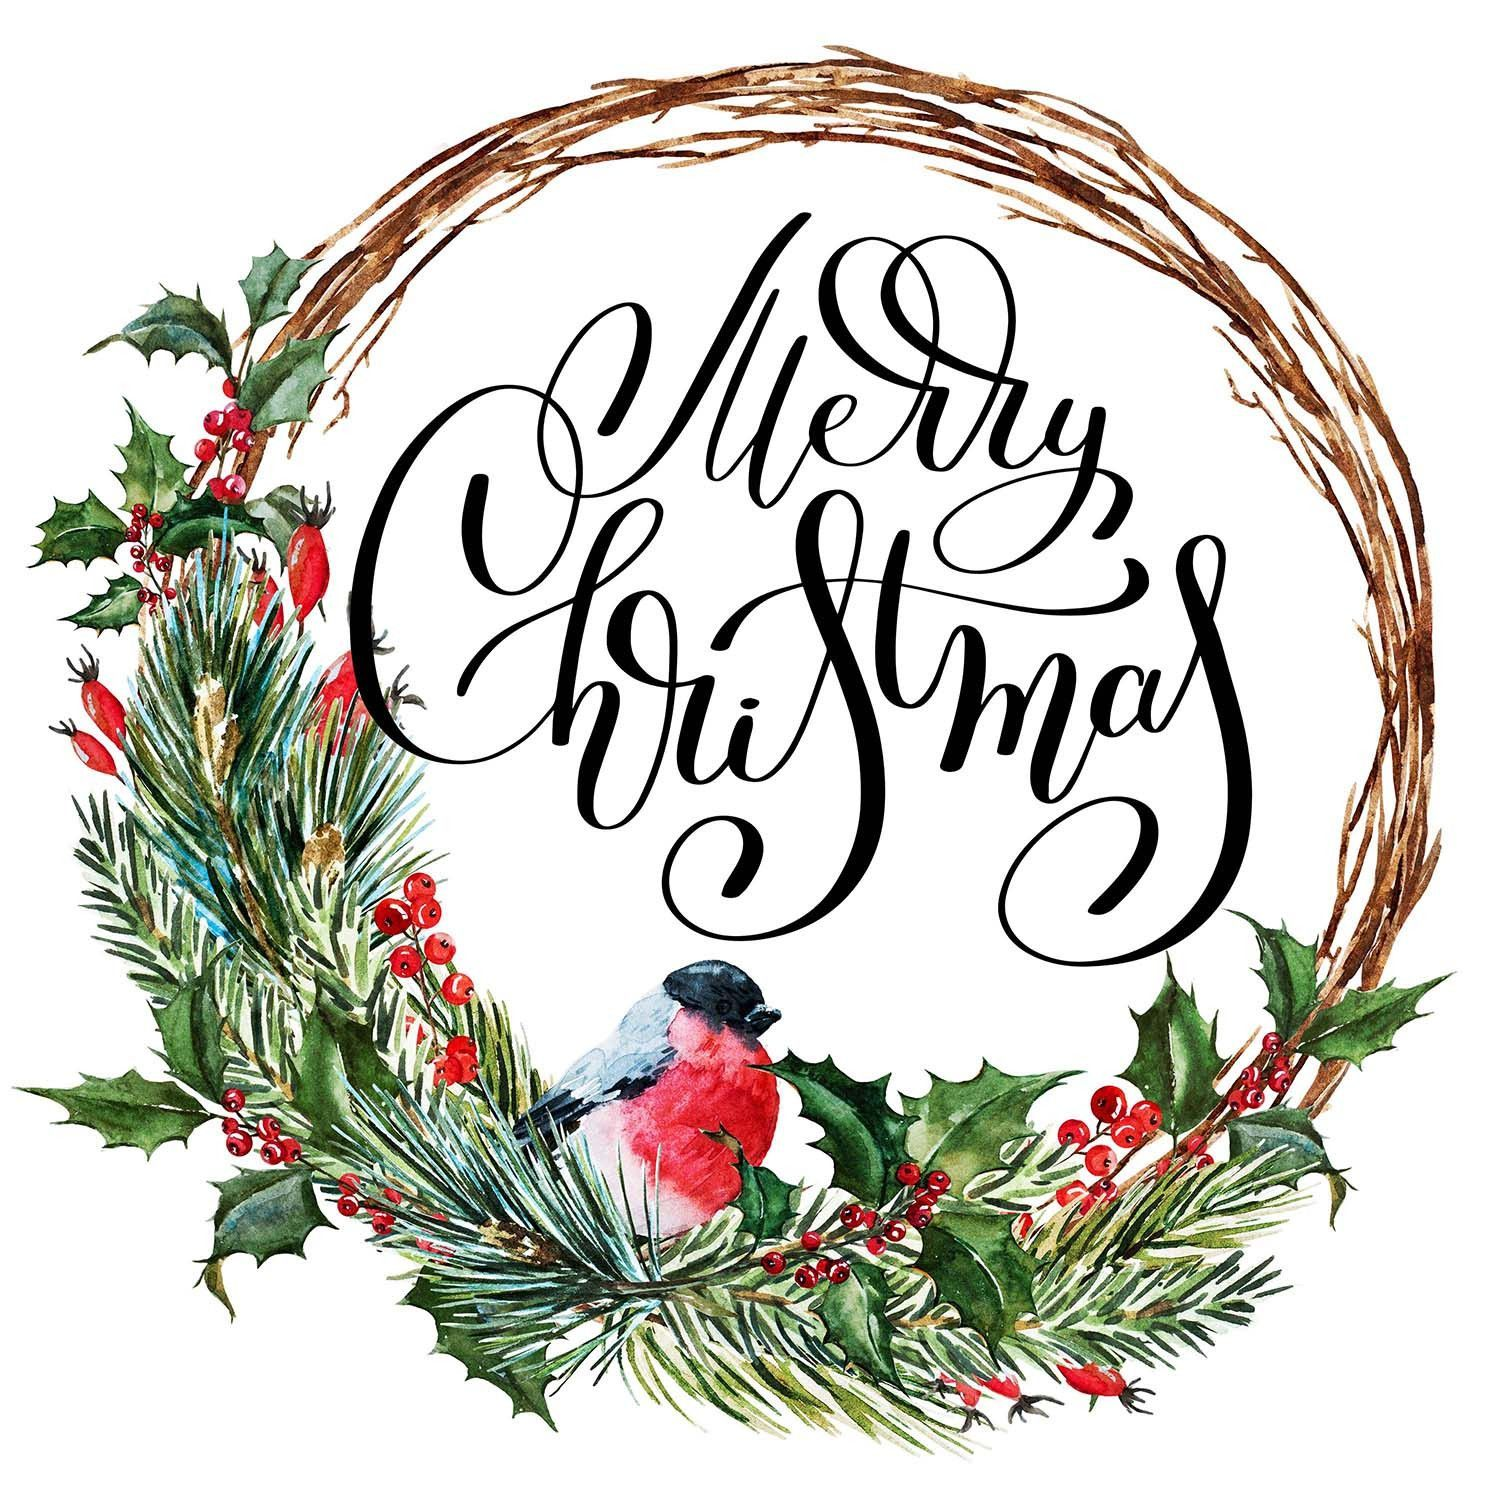 Merry Christmas - Wreath with Bird, Holly & Pine Branches Vinyl ...